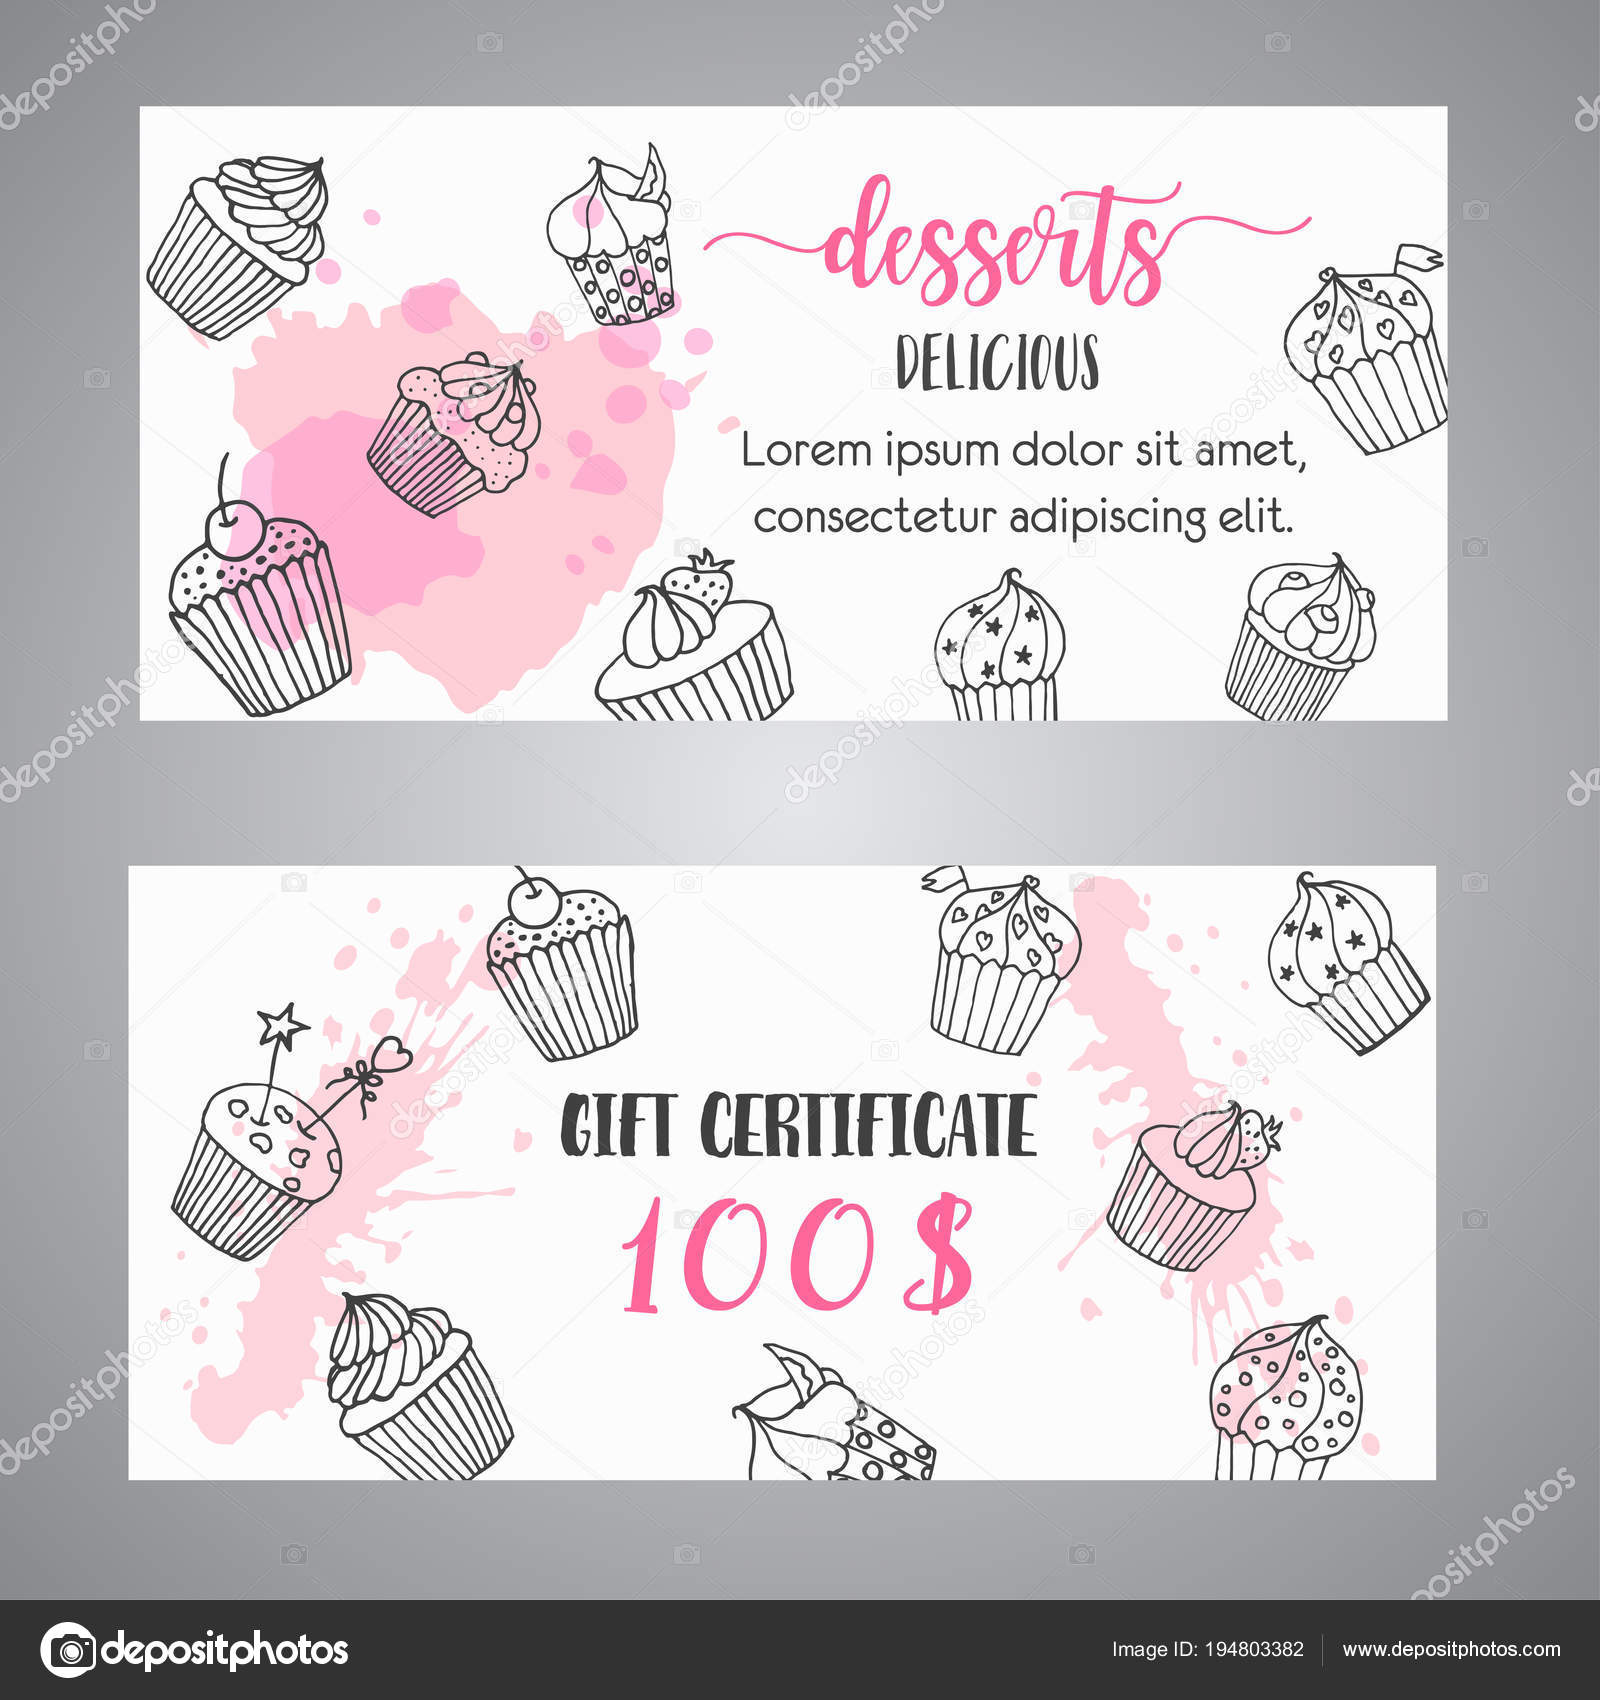 Cupcake gift certificate with handdrawn cupcakes and pink splashes cupcake gift certificate with handdrawn cupcakes and pink splashes coupon with desserts promo banner for bakery voucher template vector illustartion yelopaper Images